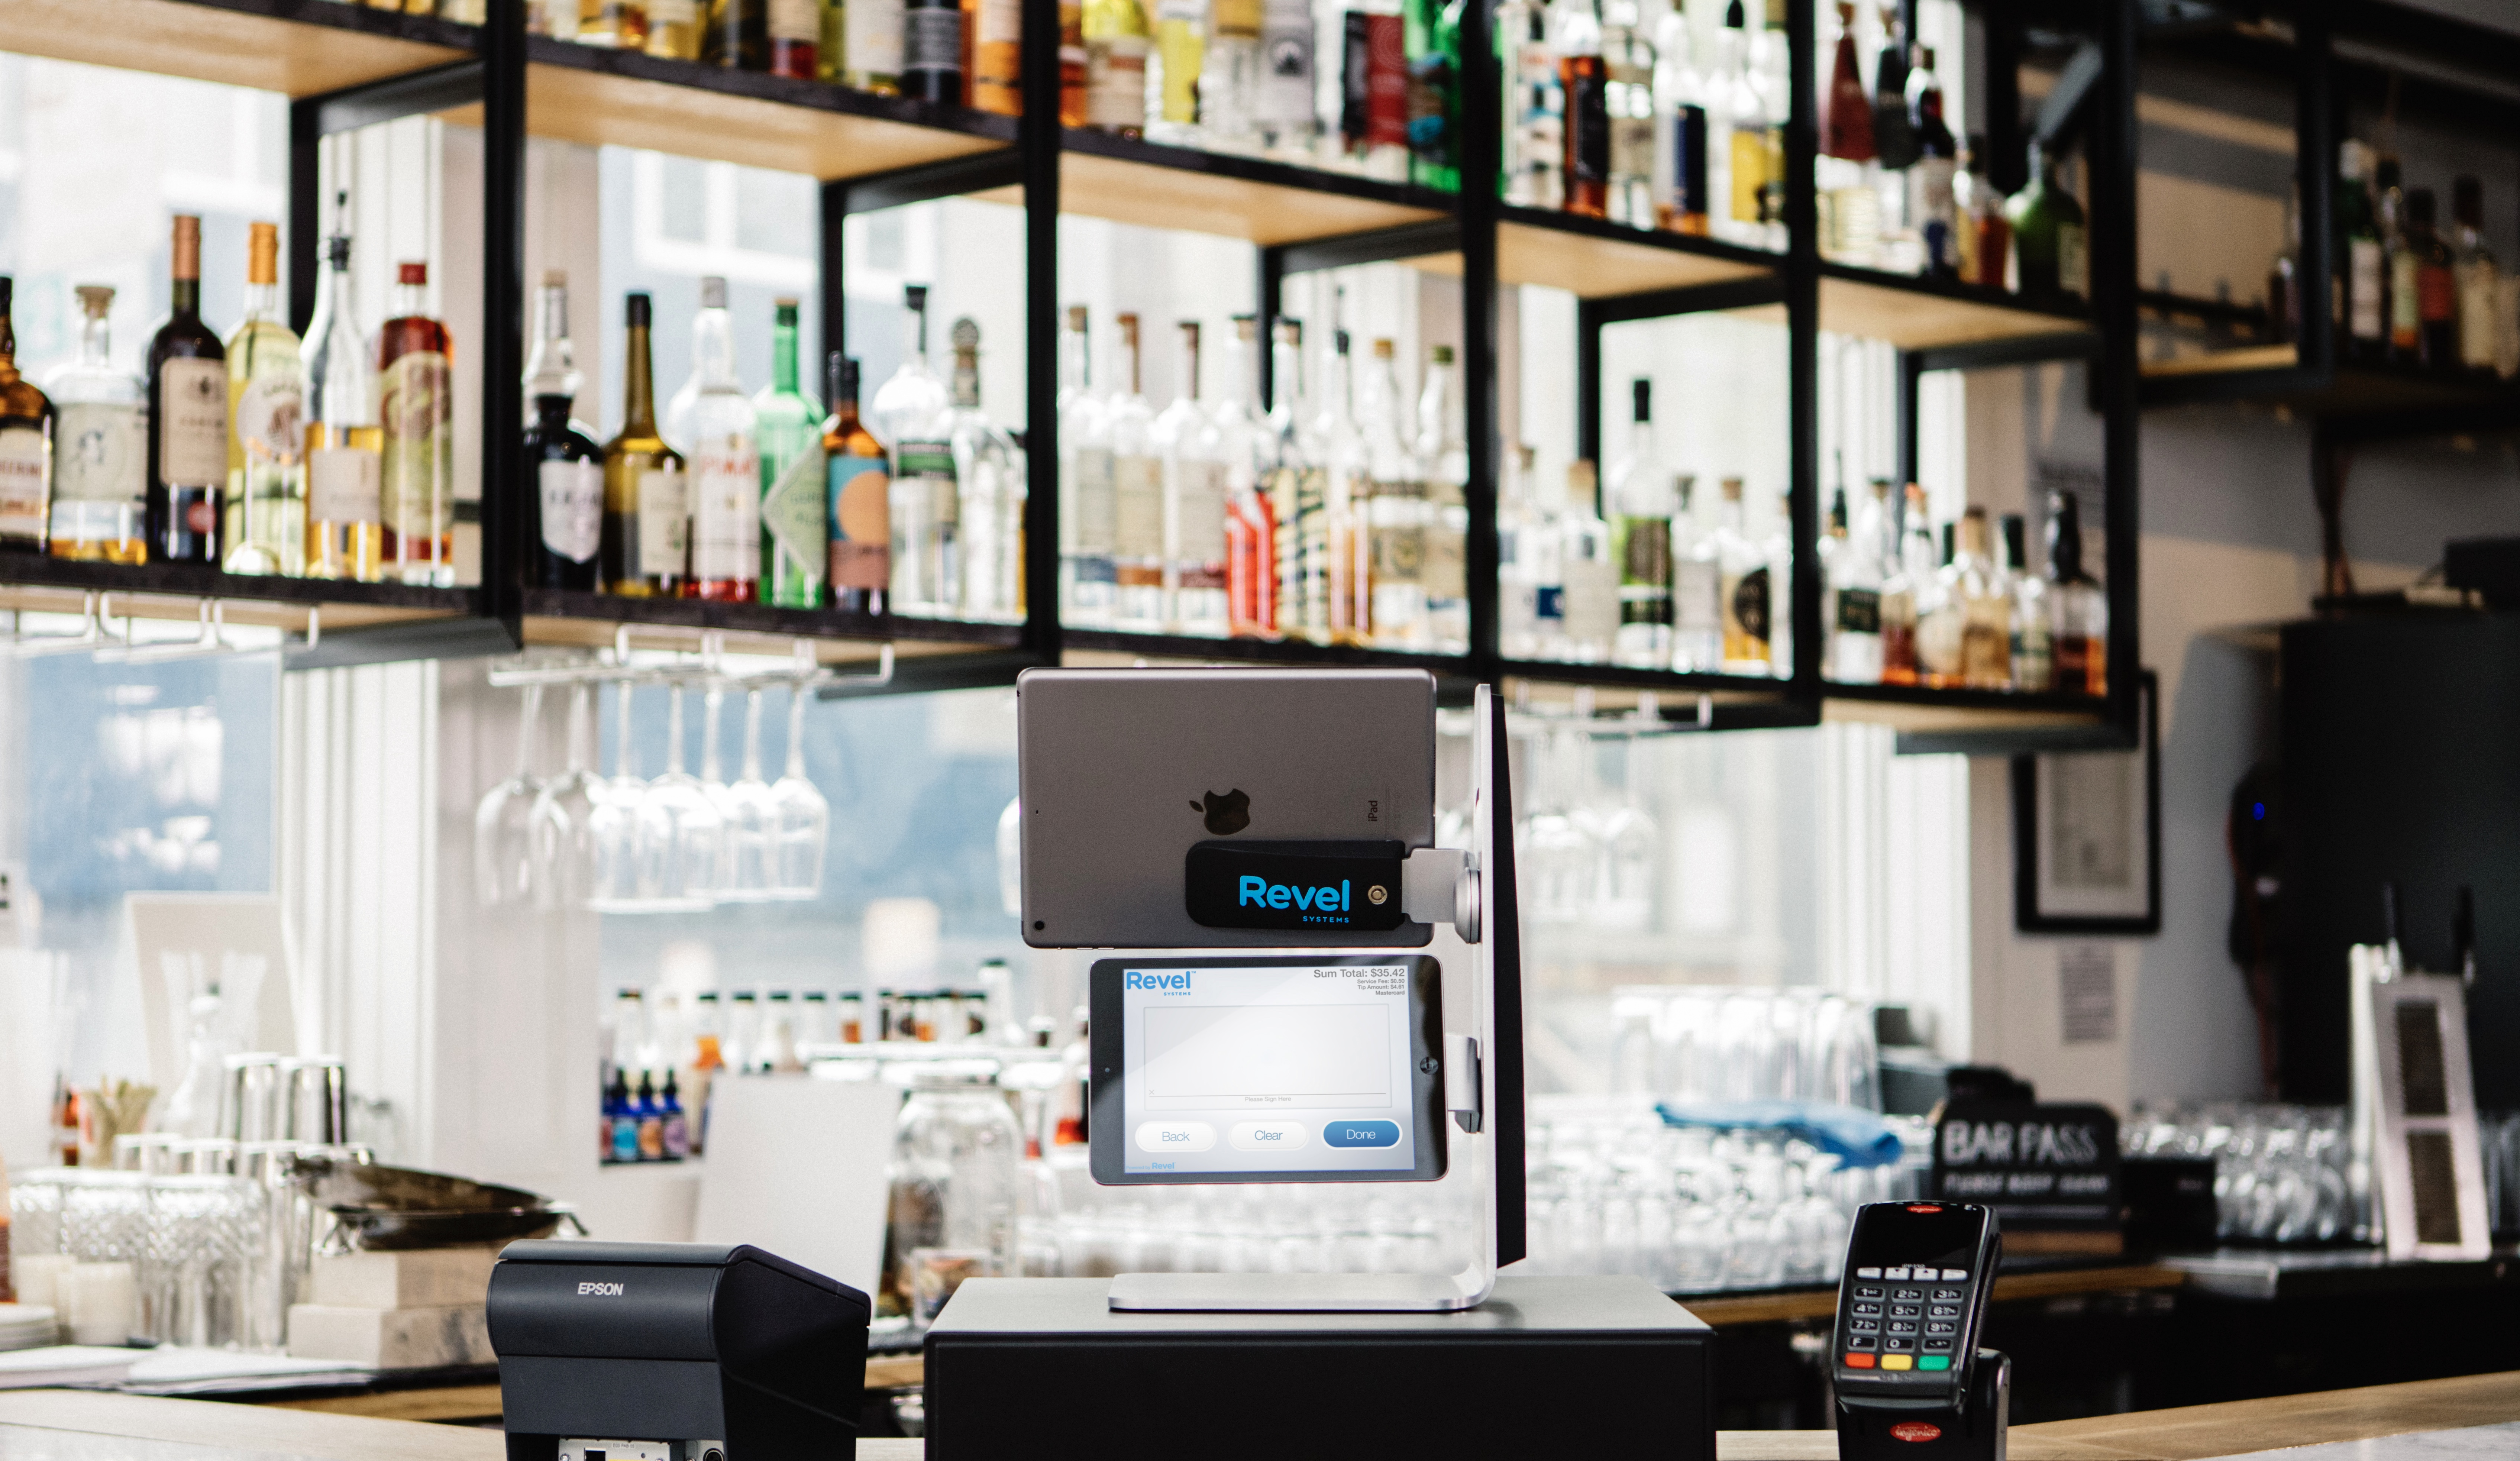 Why The iPad Is The Most Secure POS